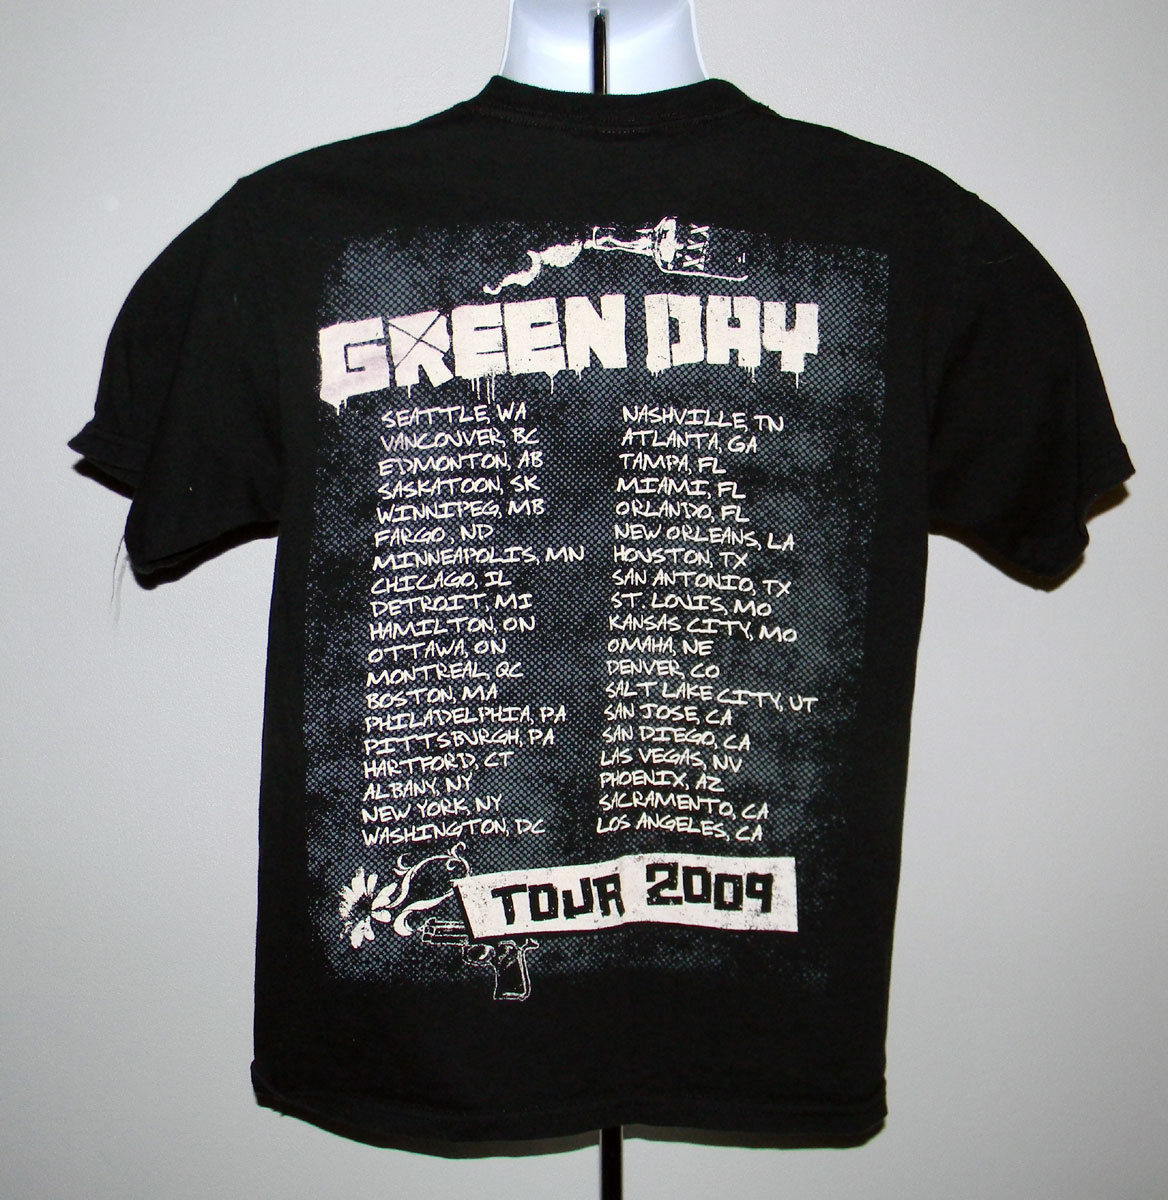 MENS GREEN DAY 2009 TOUR T SHIRT MEDIUM PUNK ROCK BAND